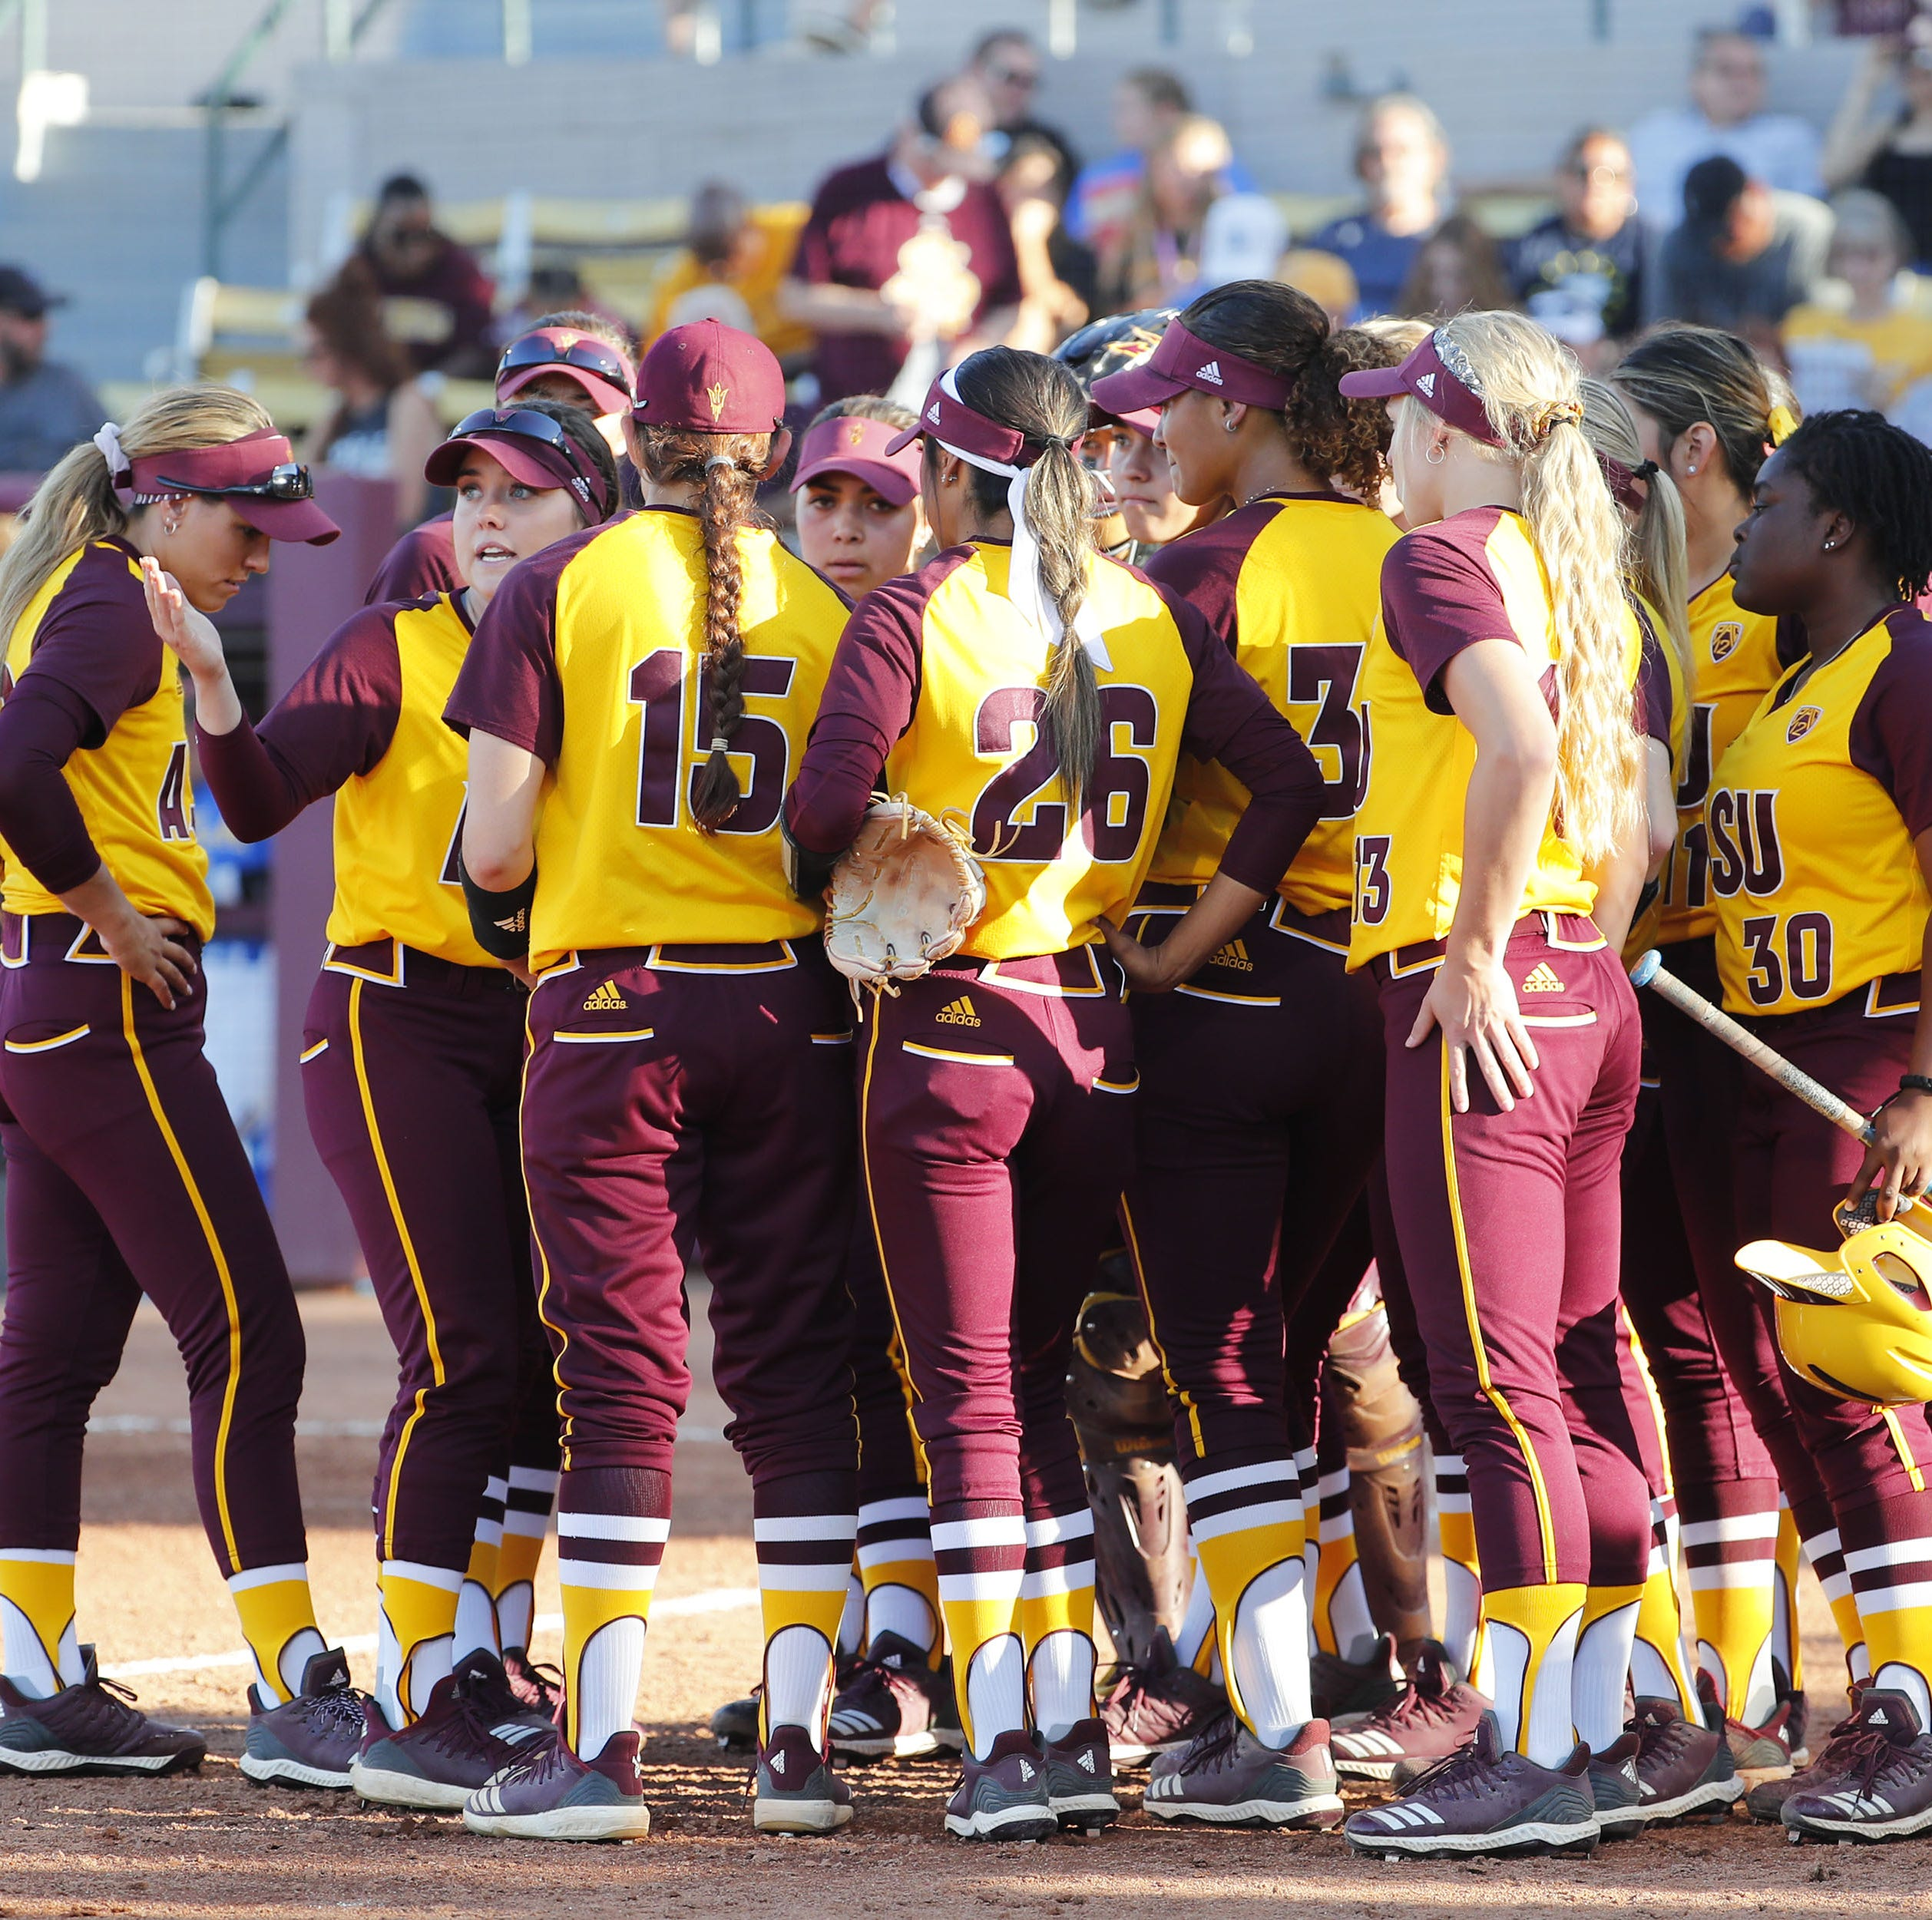 ASU softball's season ends with loss to Alabama in NCAA Tournament regional